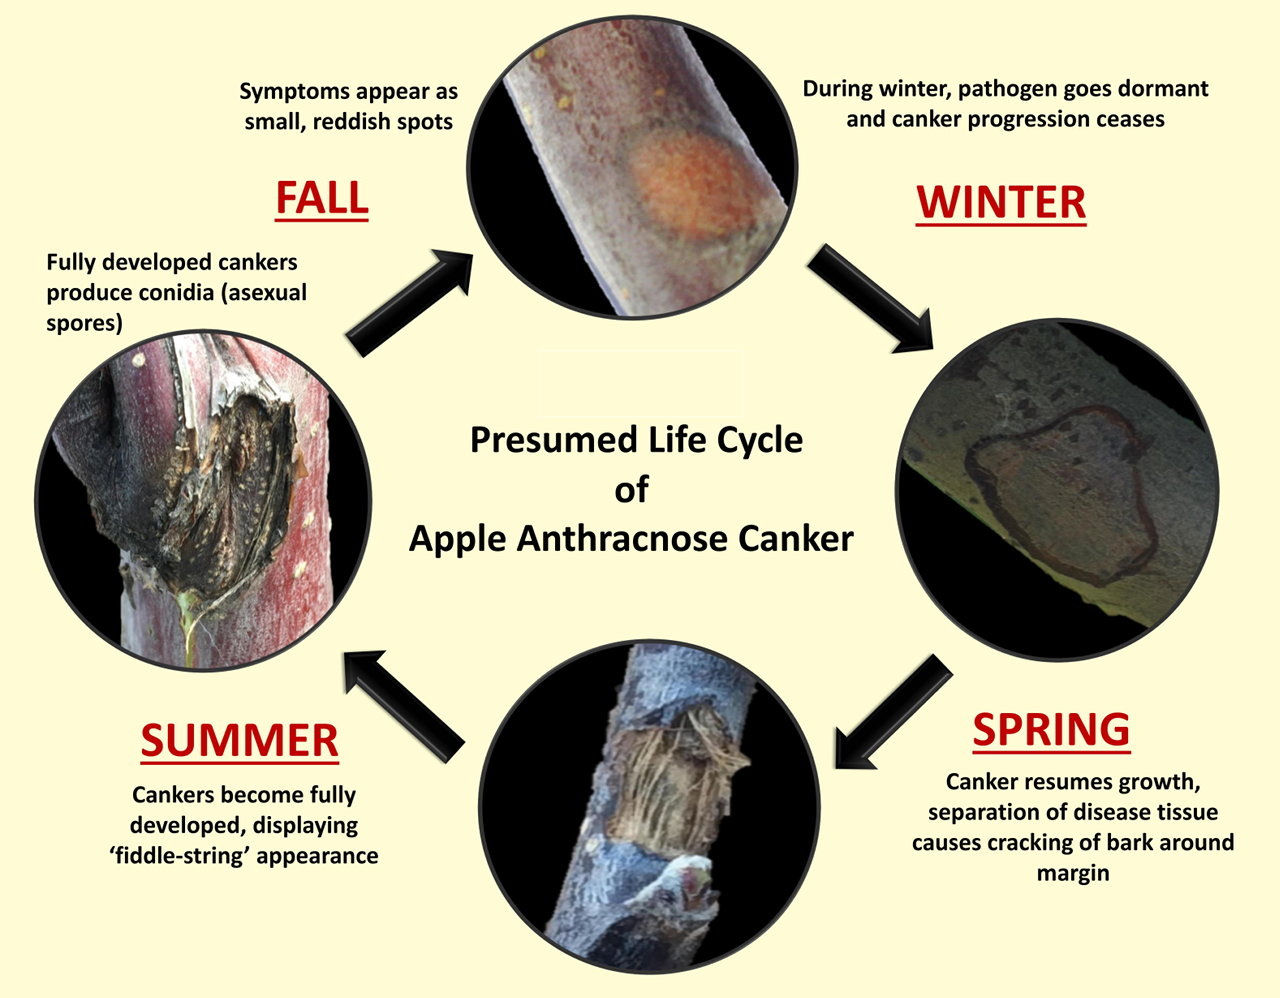 Graphic of presumed life cycle of anthracnose cankers